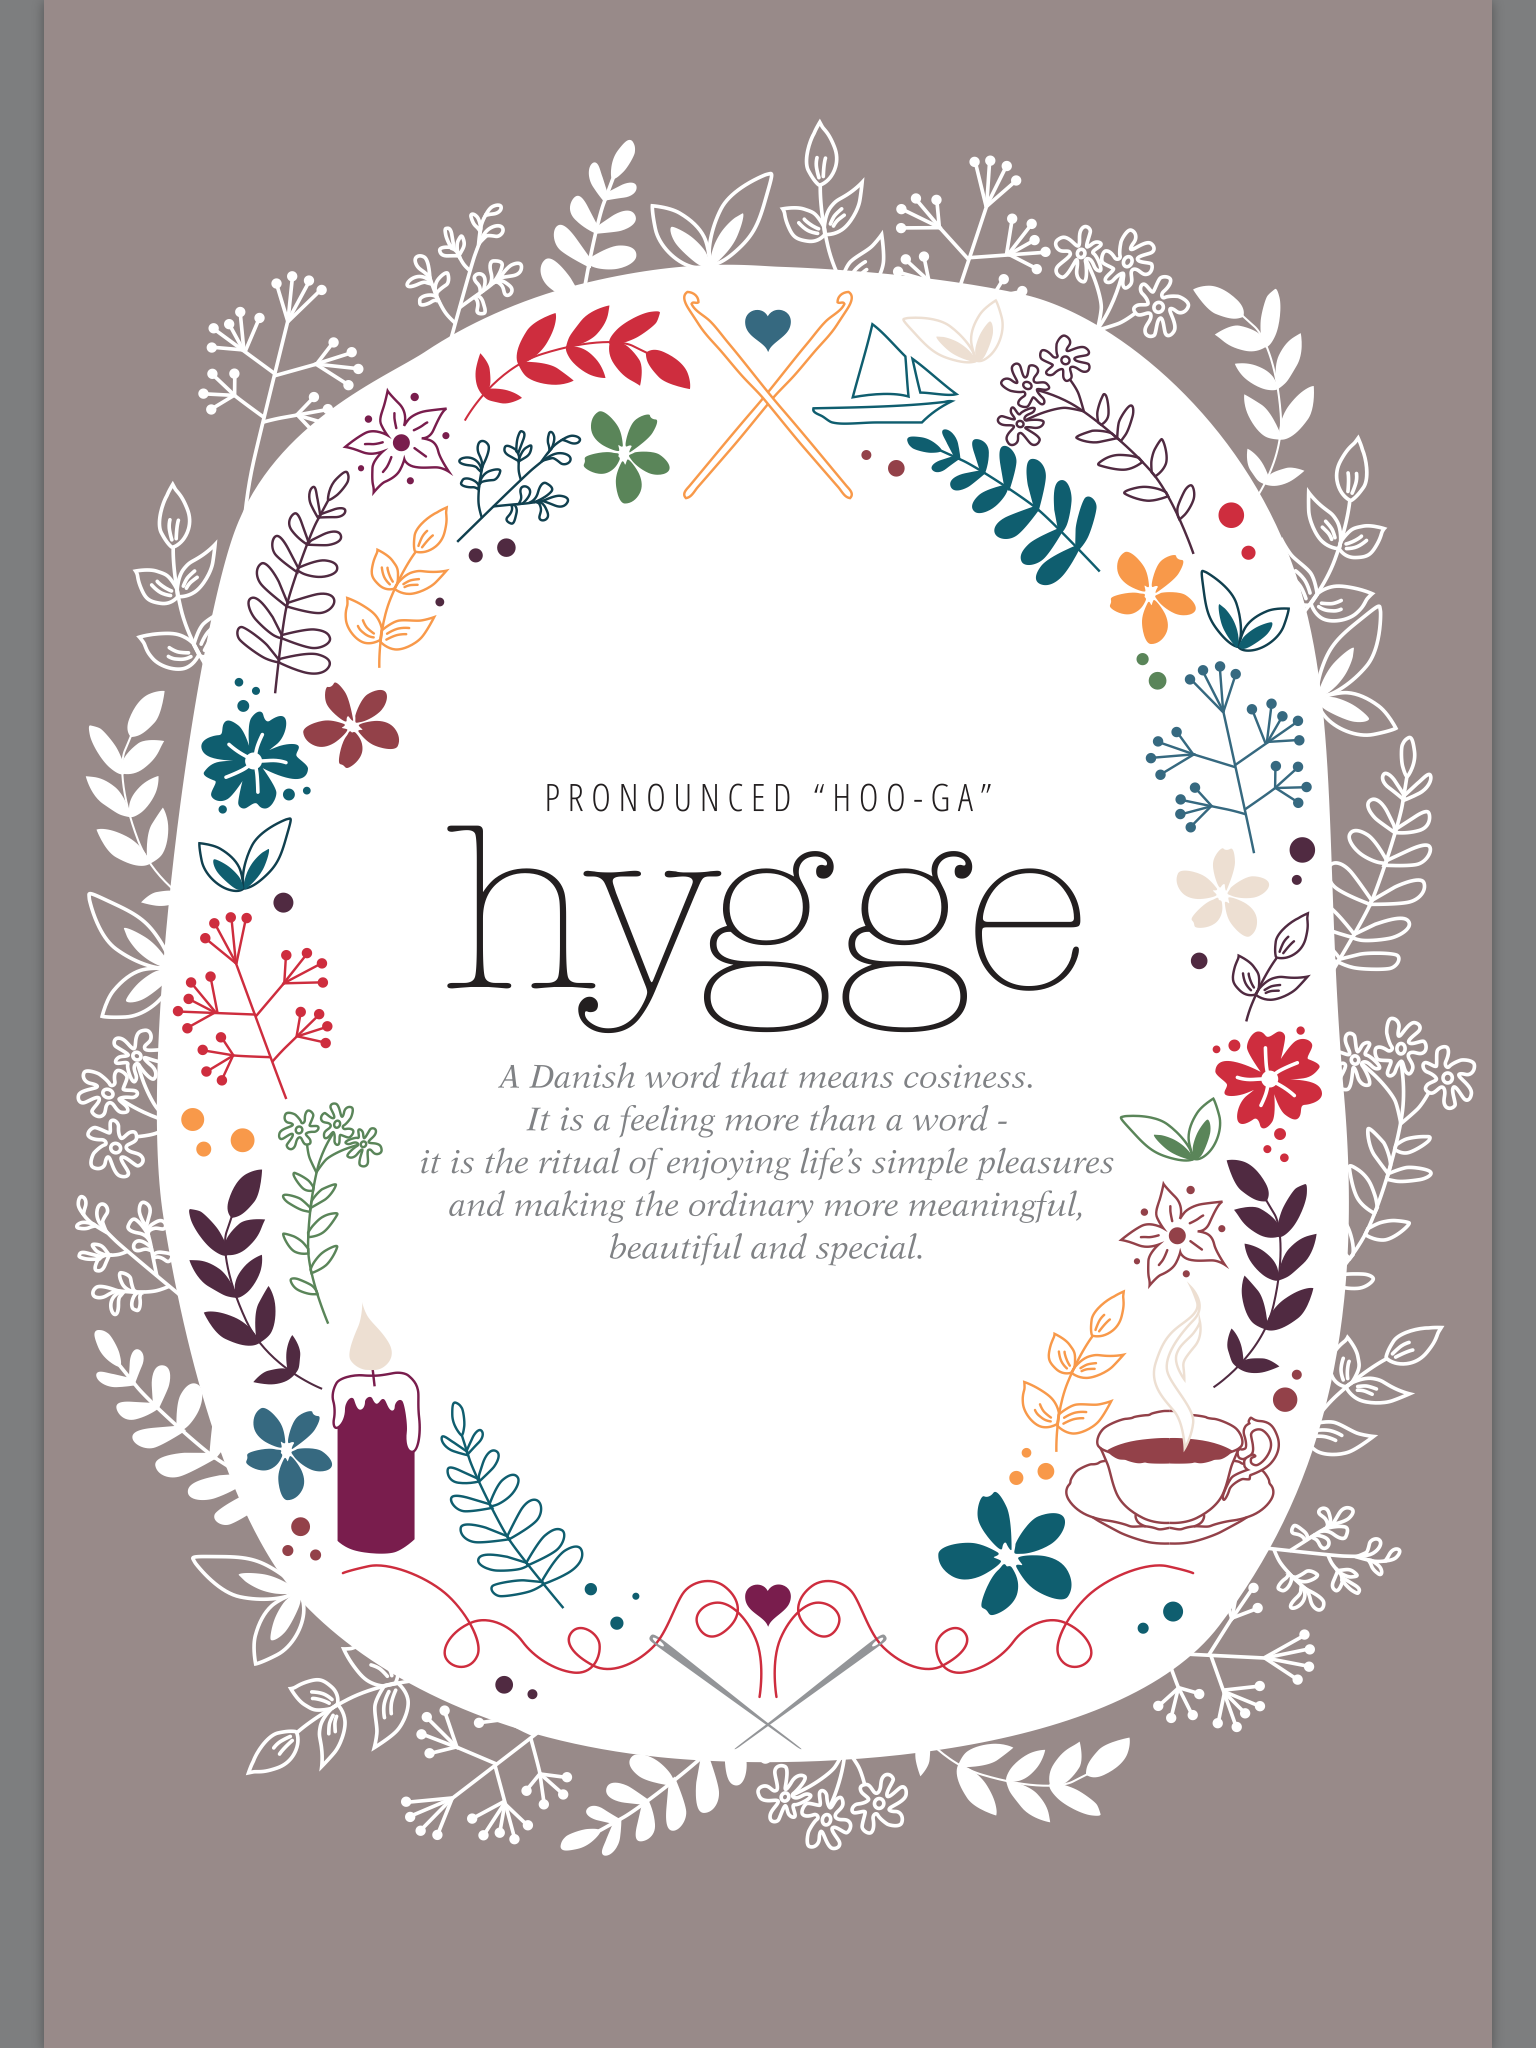 """""""hygge: a Danish word that means coziness. It is a feeling more than a word - it is the ritual of enjoying life's small pleasures and making the ordinary more meaningful, beautiful, and special."""" #cozy #cozylife #hygge #hyggelifestyle"""